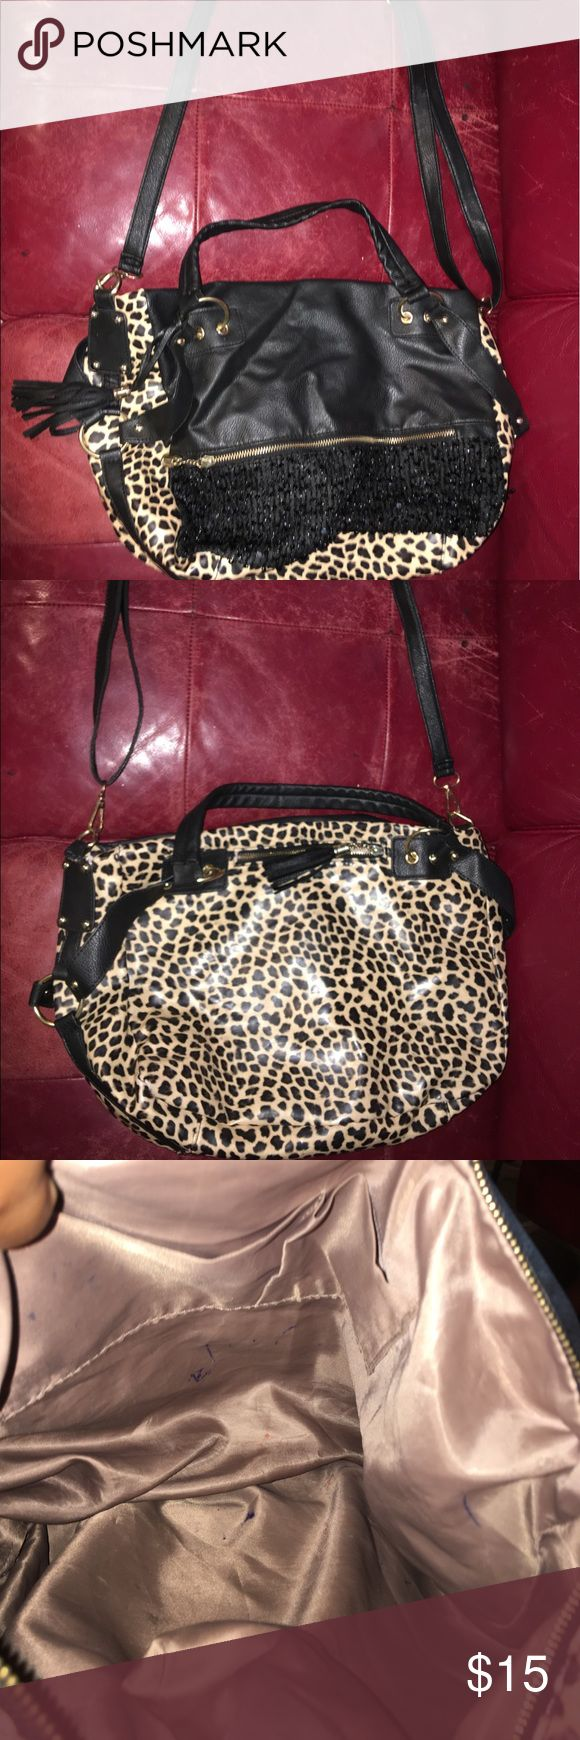 Animal Print Shoulder Bag Beautiful large animal Print Shoulderbag brown tan black and gold with beautiful tassel zipper pulls Flaws::: Has ink marks inside see photos reflex in price Bags Shoulder Bags